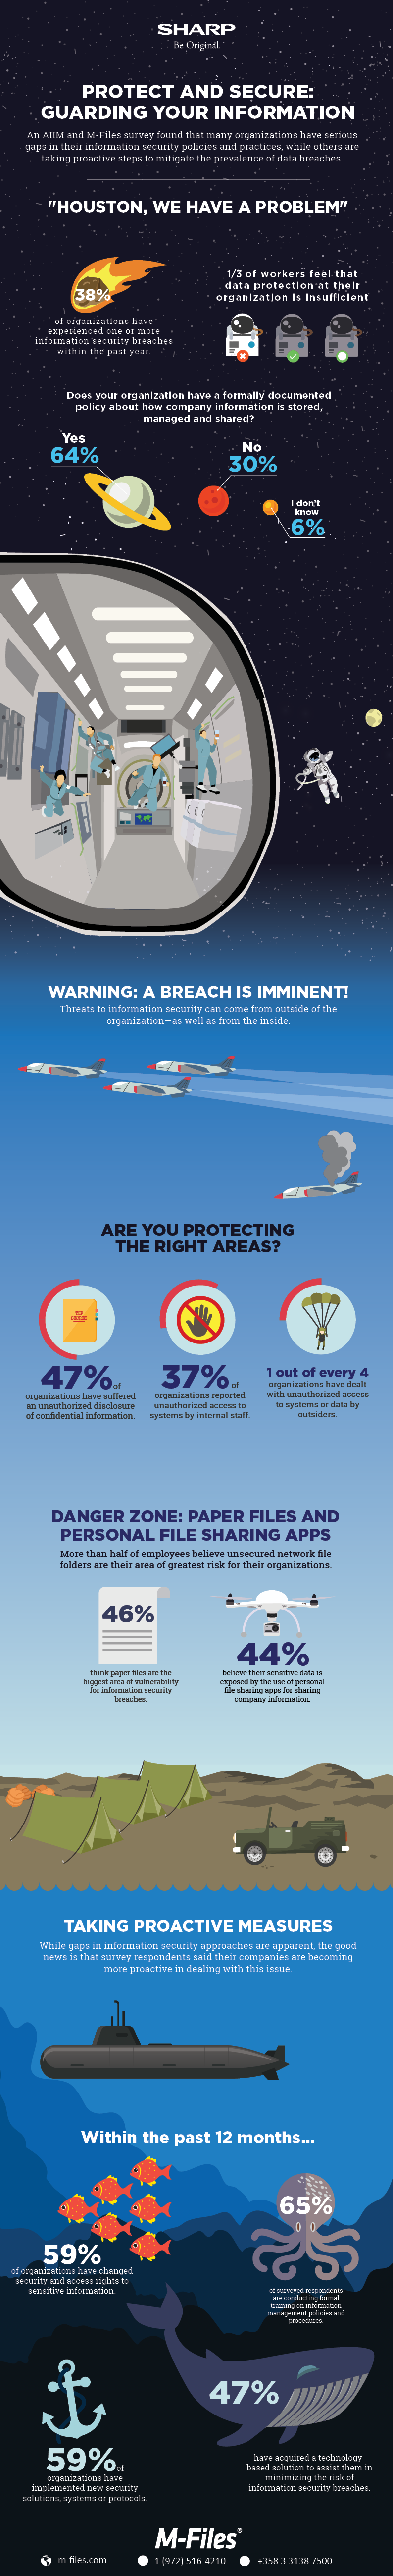 M-Files security infographic-1